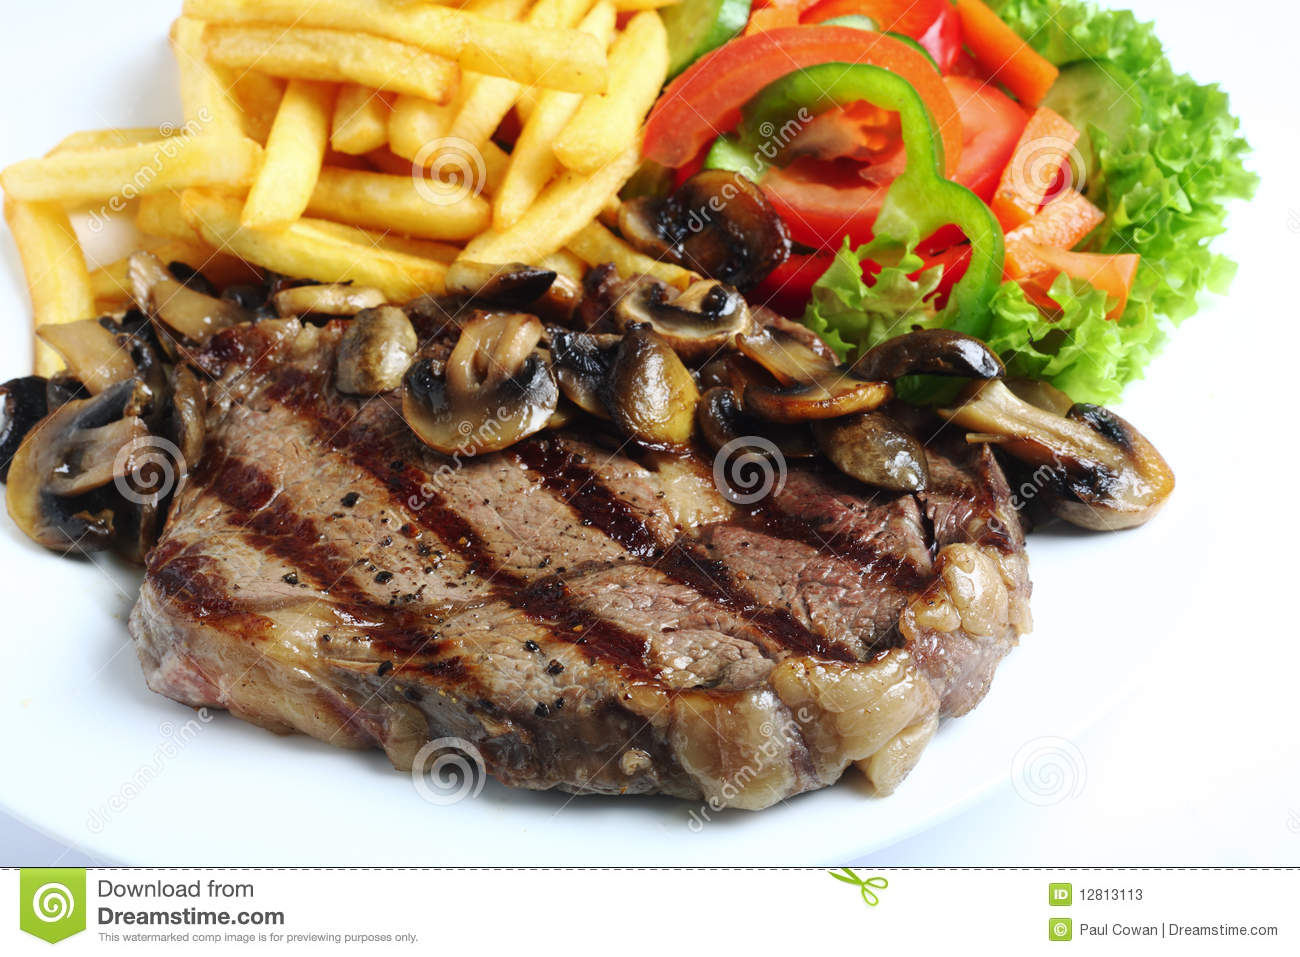 Grilled Ribeye Steak Dinner Stock Image - Image: 12813113 | 1300 x 957 jpeg 186kB